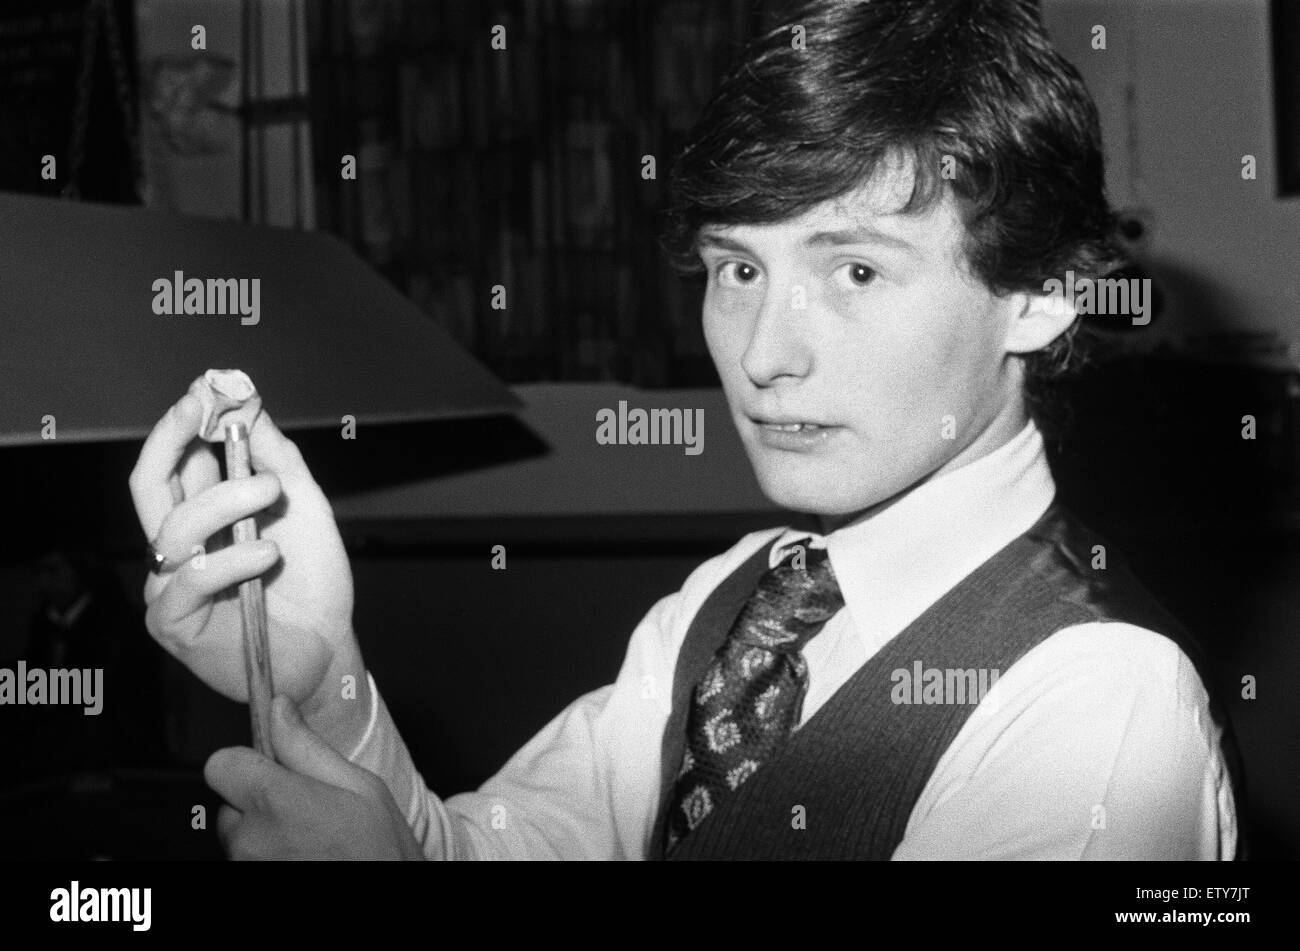 Seventeen year old snooker player Jimmy White playing at Wisbech Conservative Club in Cambridgeshire. 21st March - Stock Image